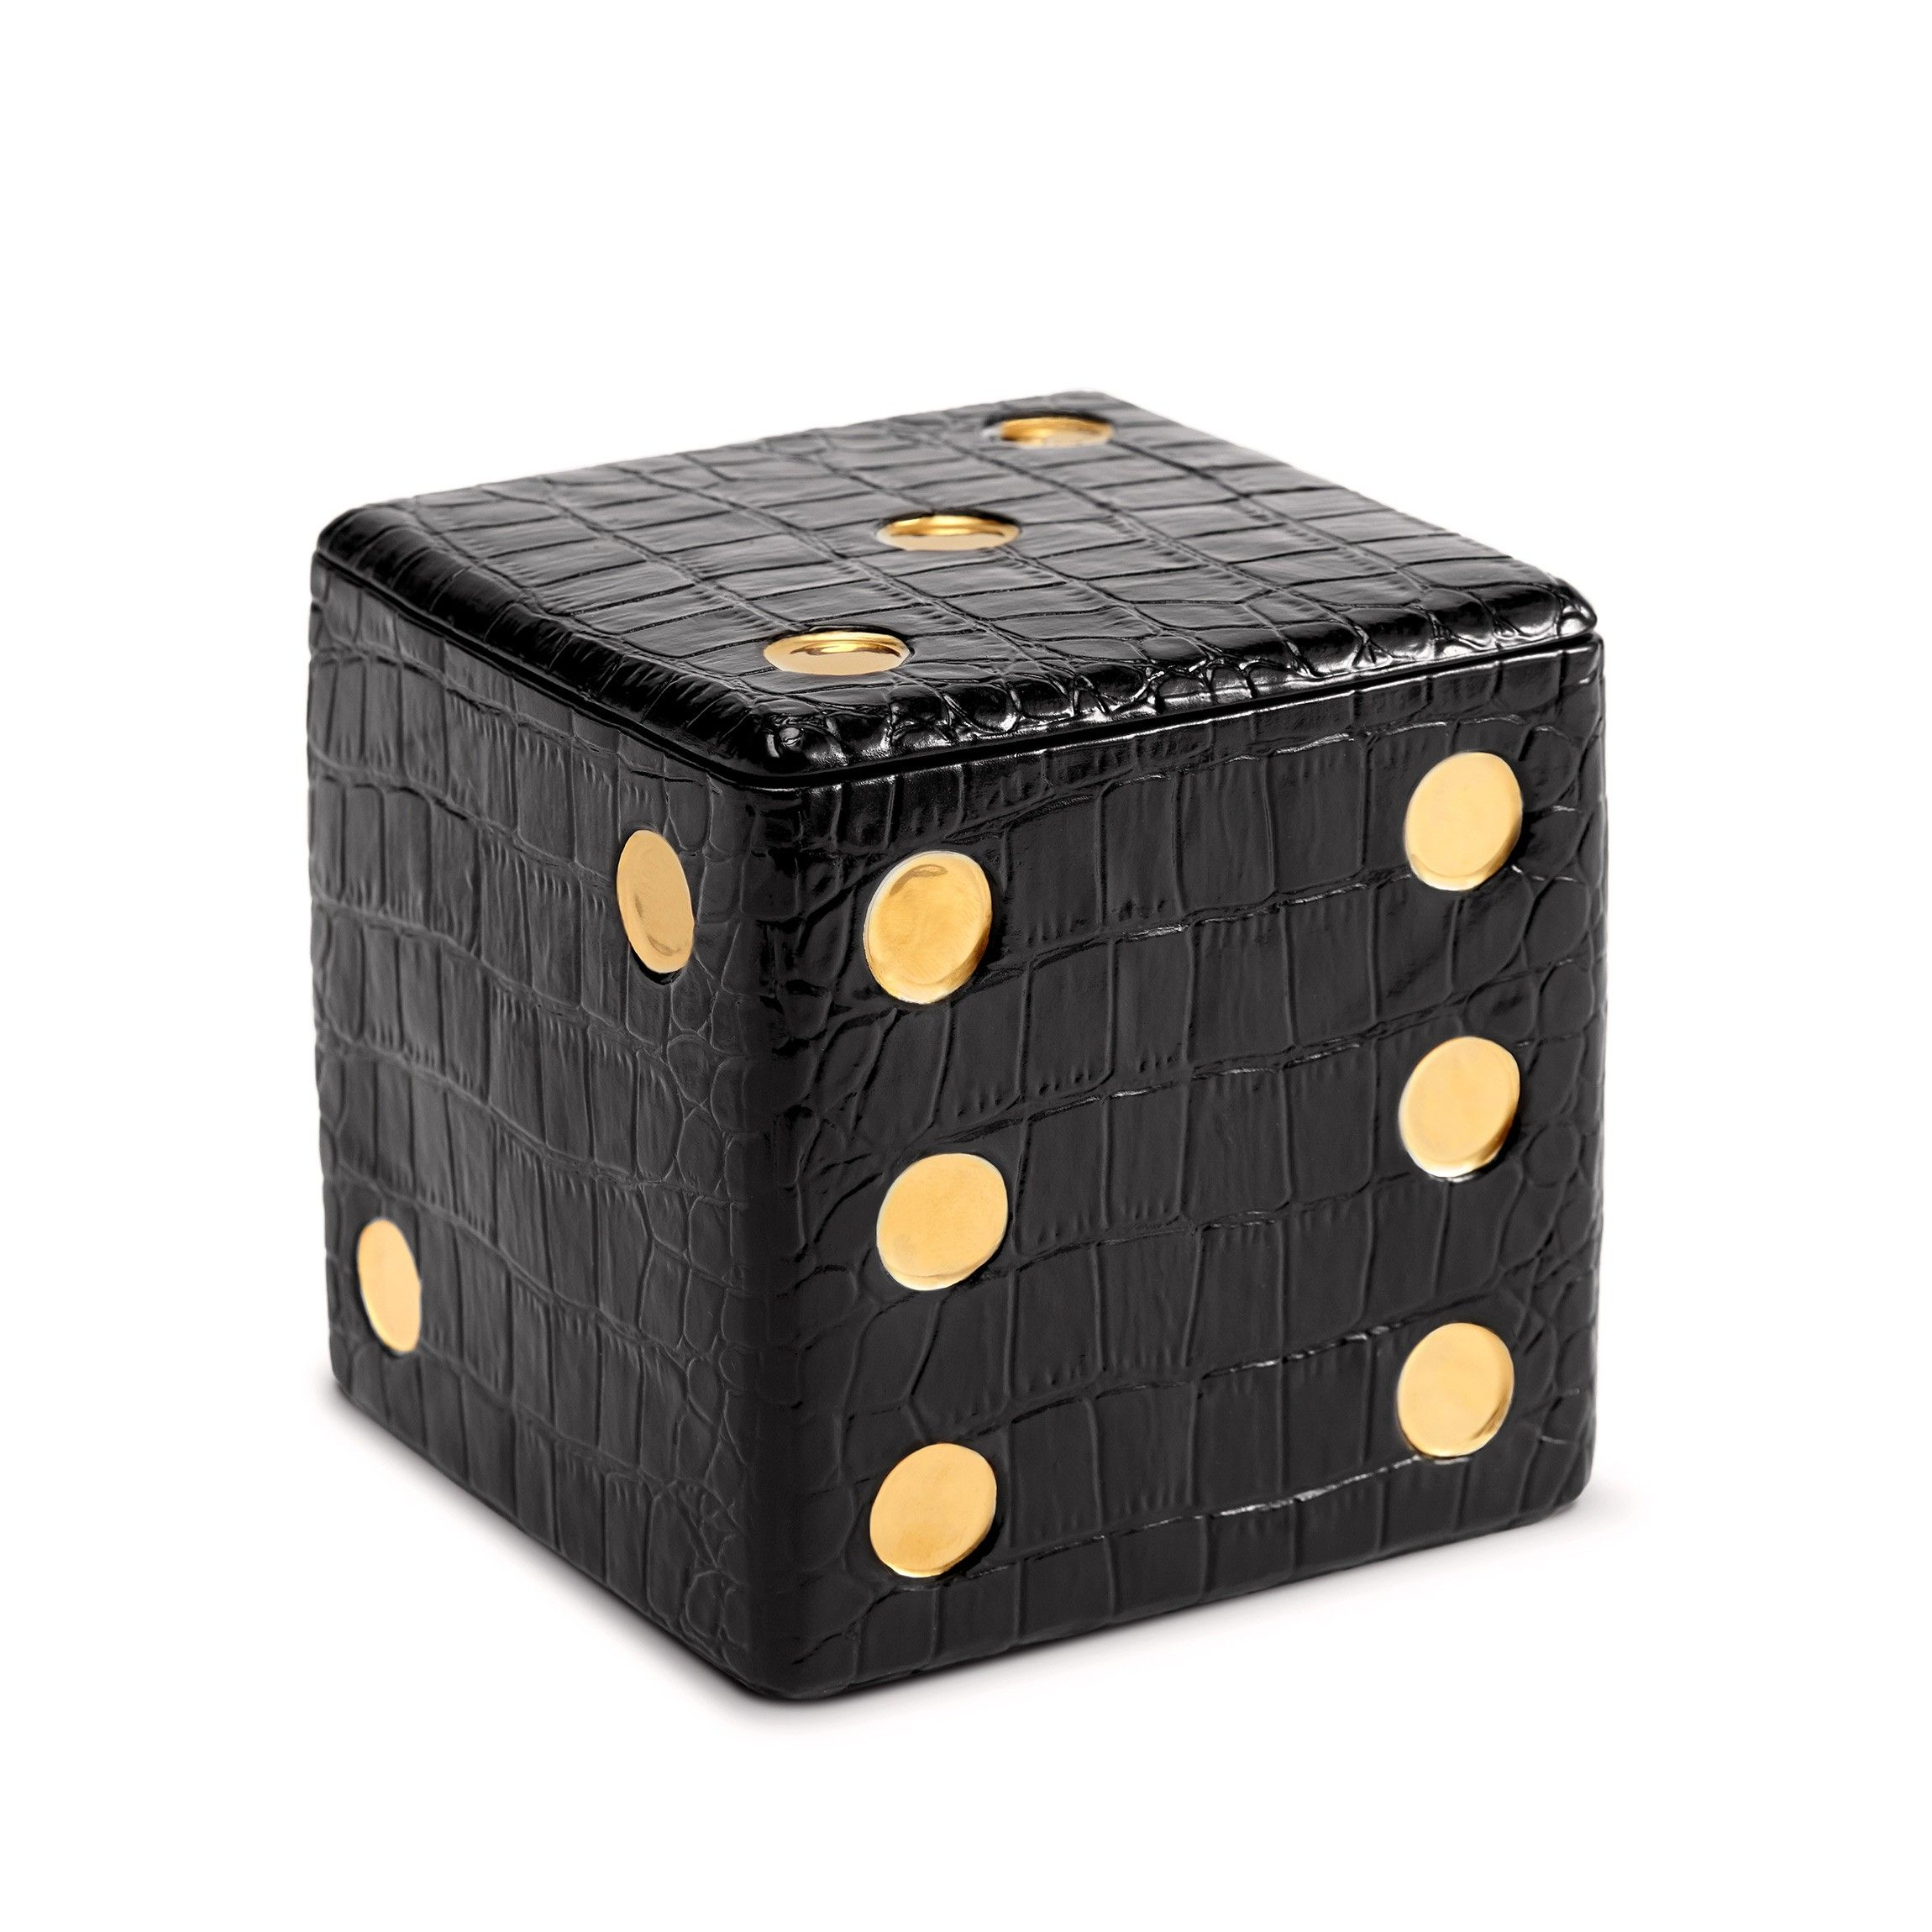 L'OBJET Dice Decorative Box Black | G130 | http://bit.ly/1pjxbPE